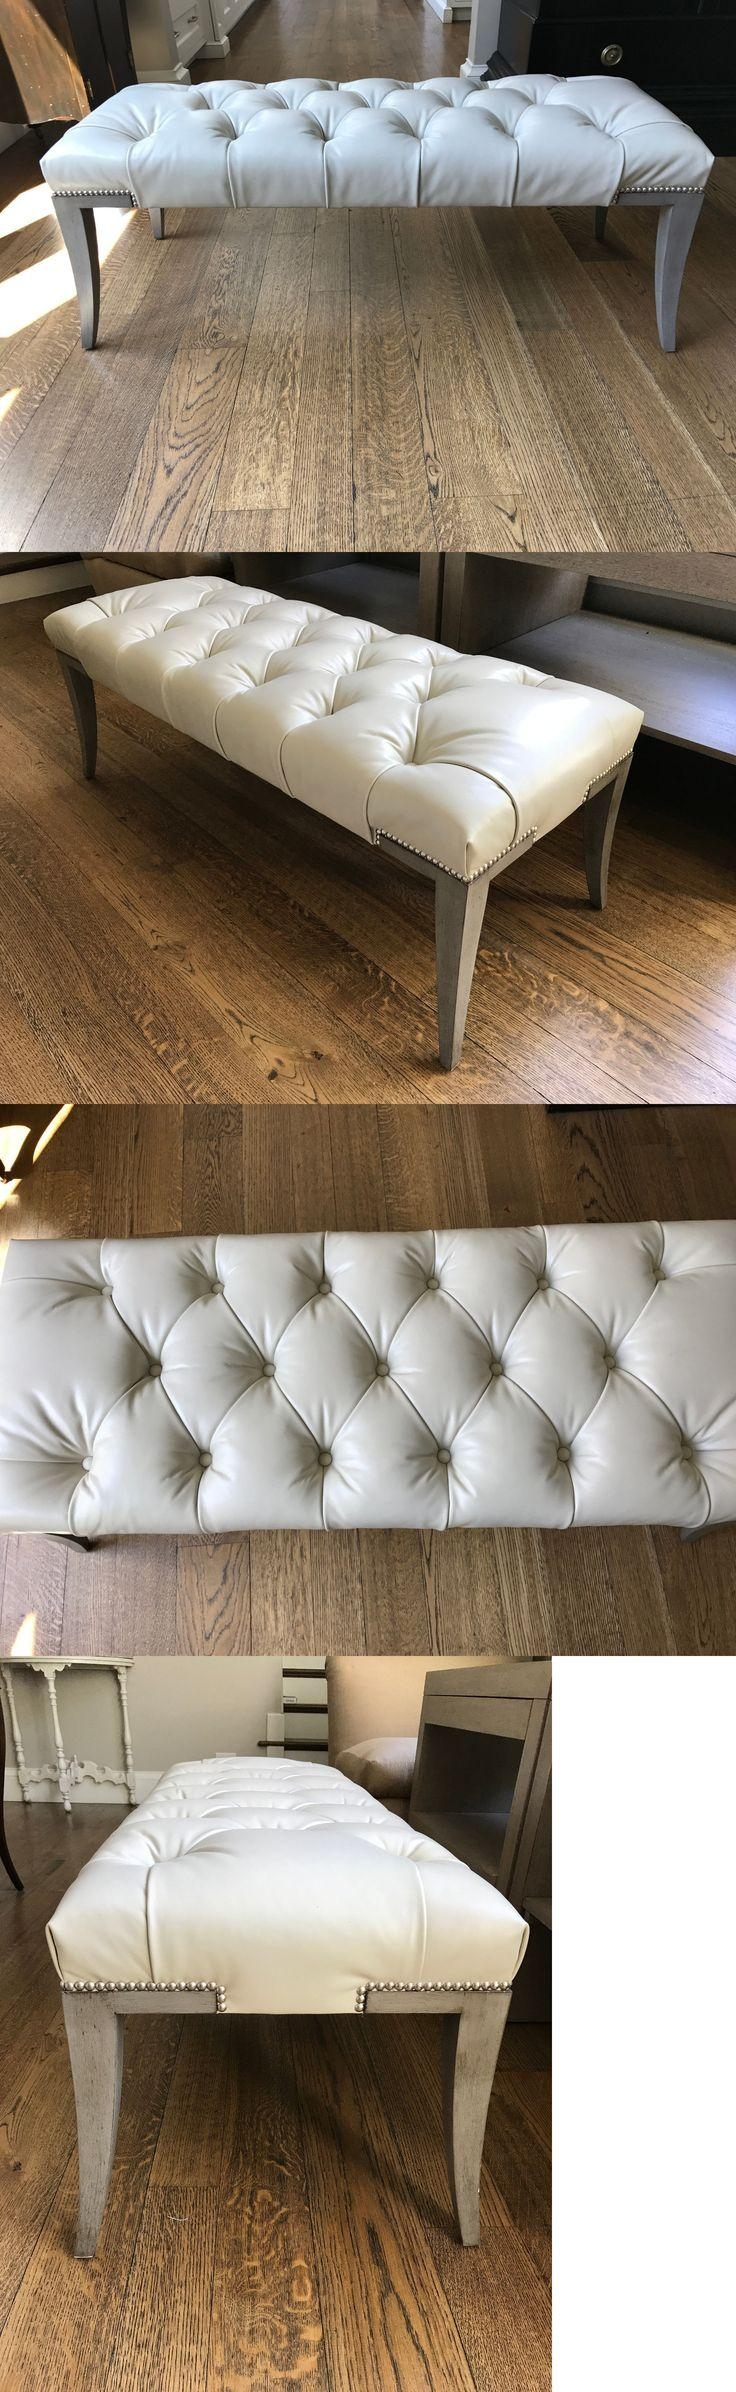 Best 25+ Ottoman Footstool Ideas Only On Pinterest | Ottomans, The In Footstool Pouffe Sofa Folding Bed (Image 3 of 20)